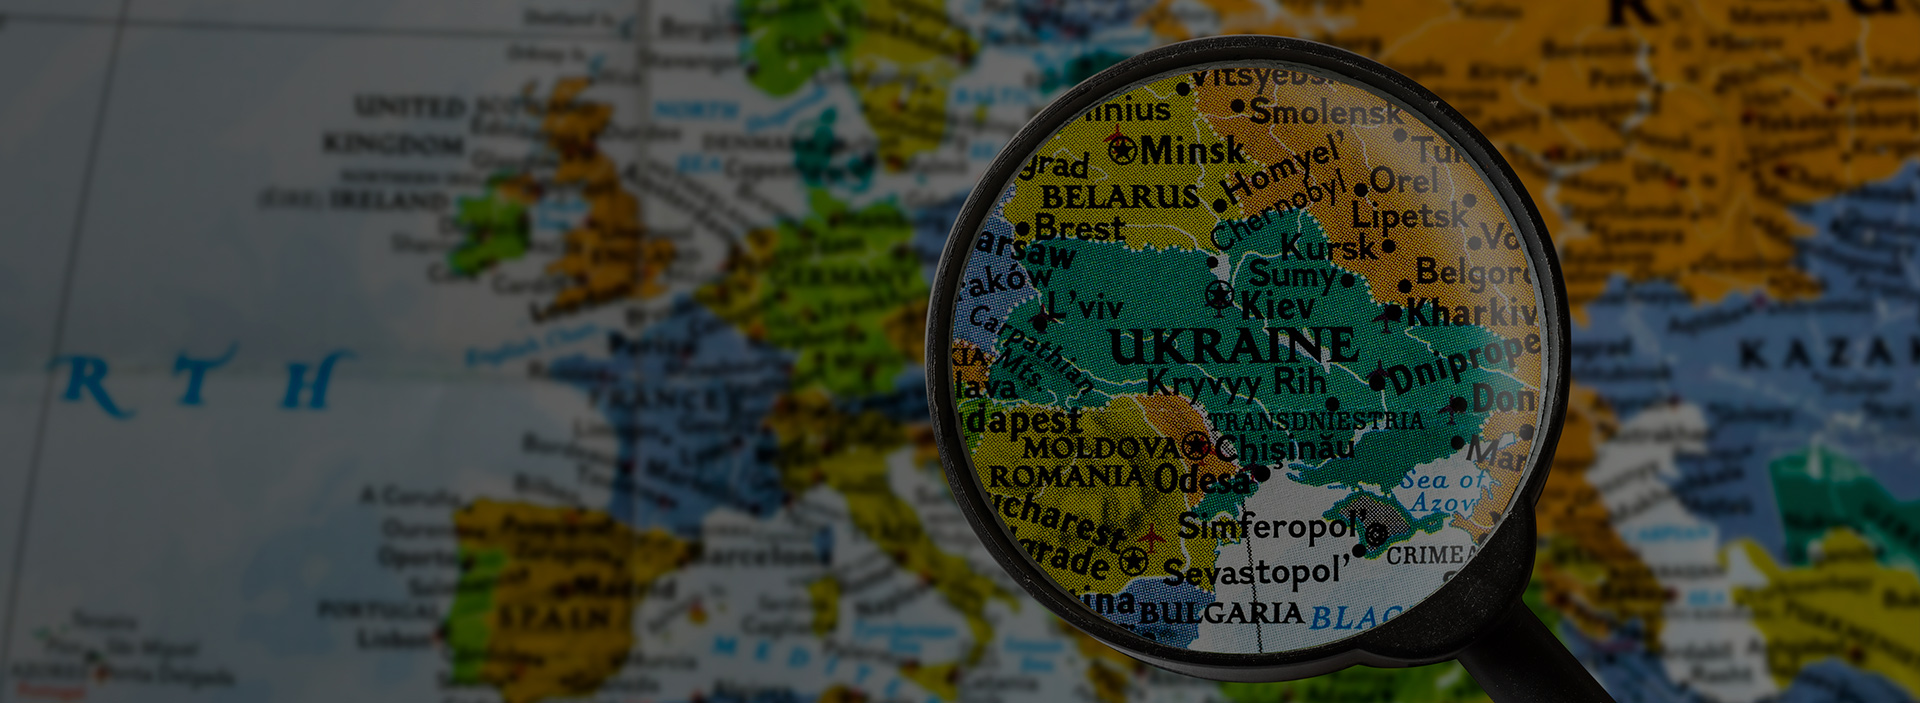 25 stats revealing the benefits of IT outsourcing to Ukraine